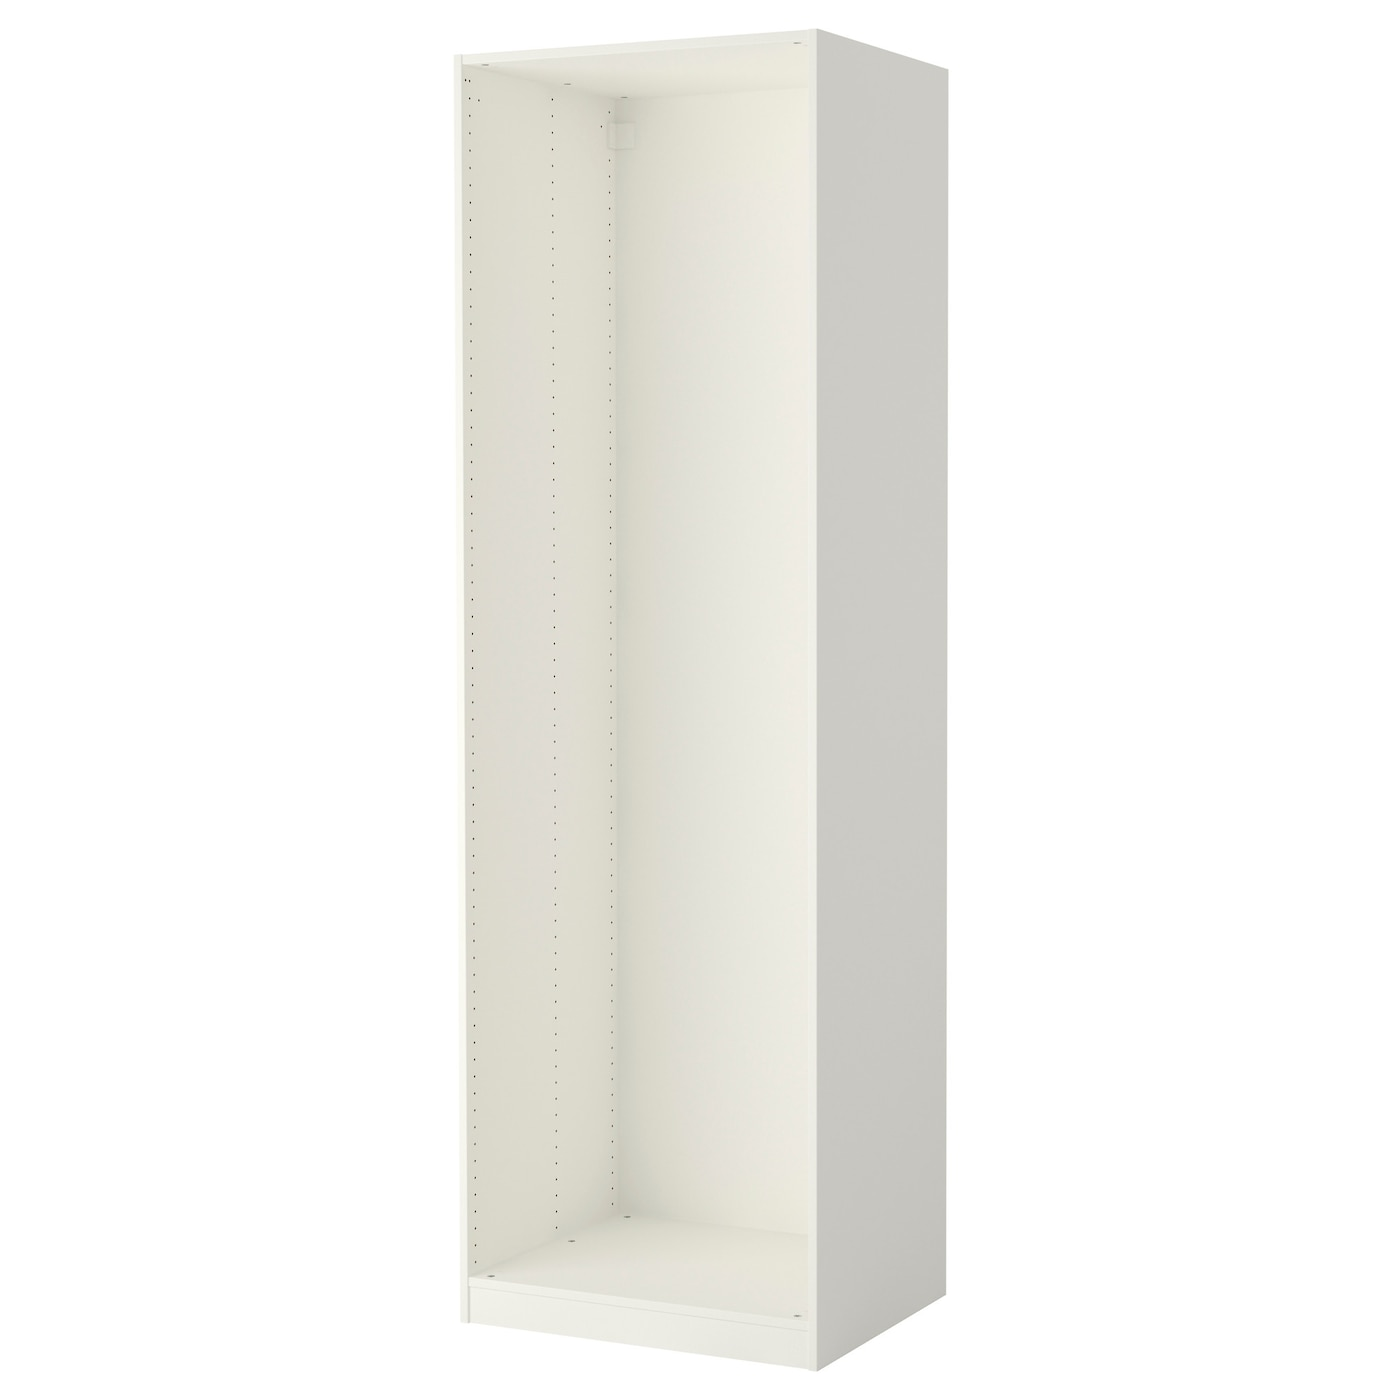 pax caisson d 39 armoire blanc 75 x 58 x 236 cm ikea. Black Bedroom Furniture Sets. Home Design Ideas